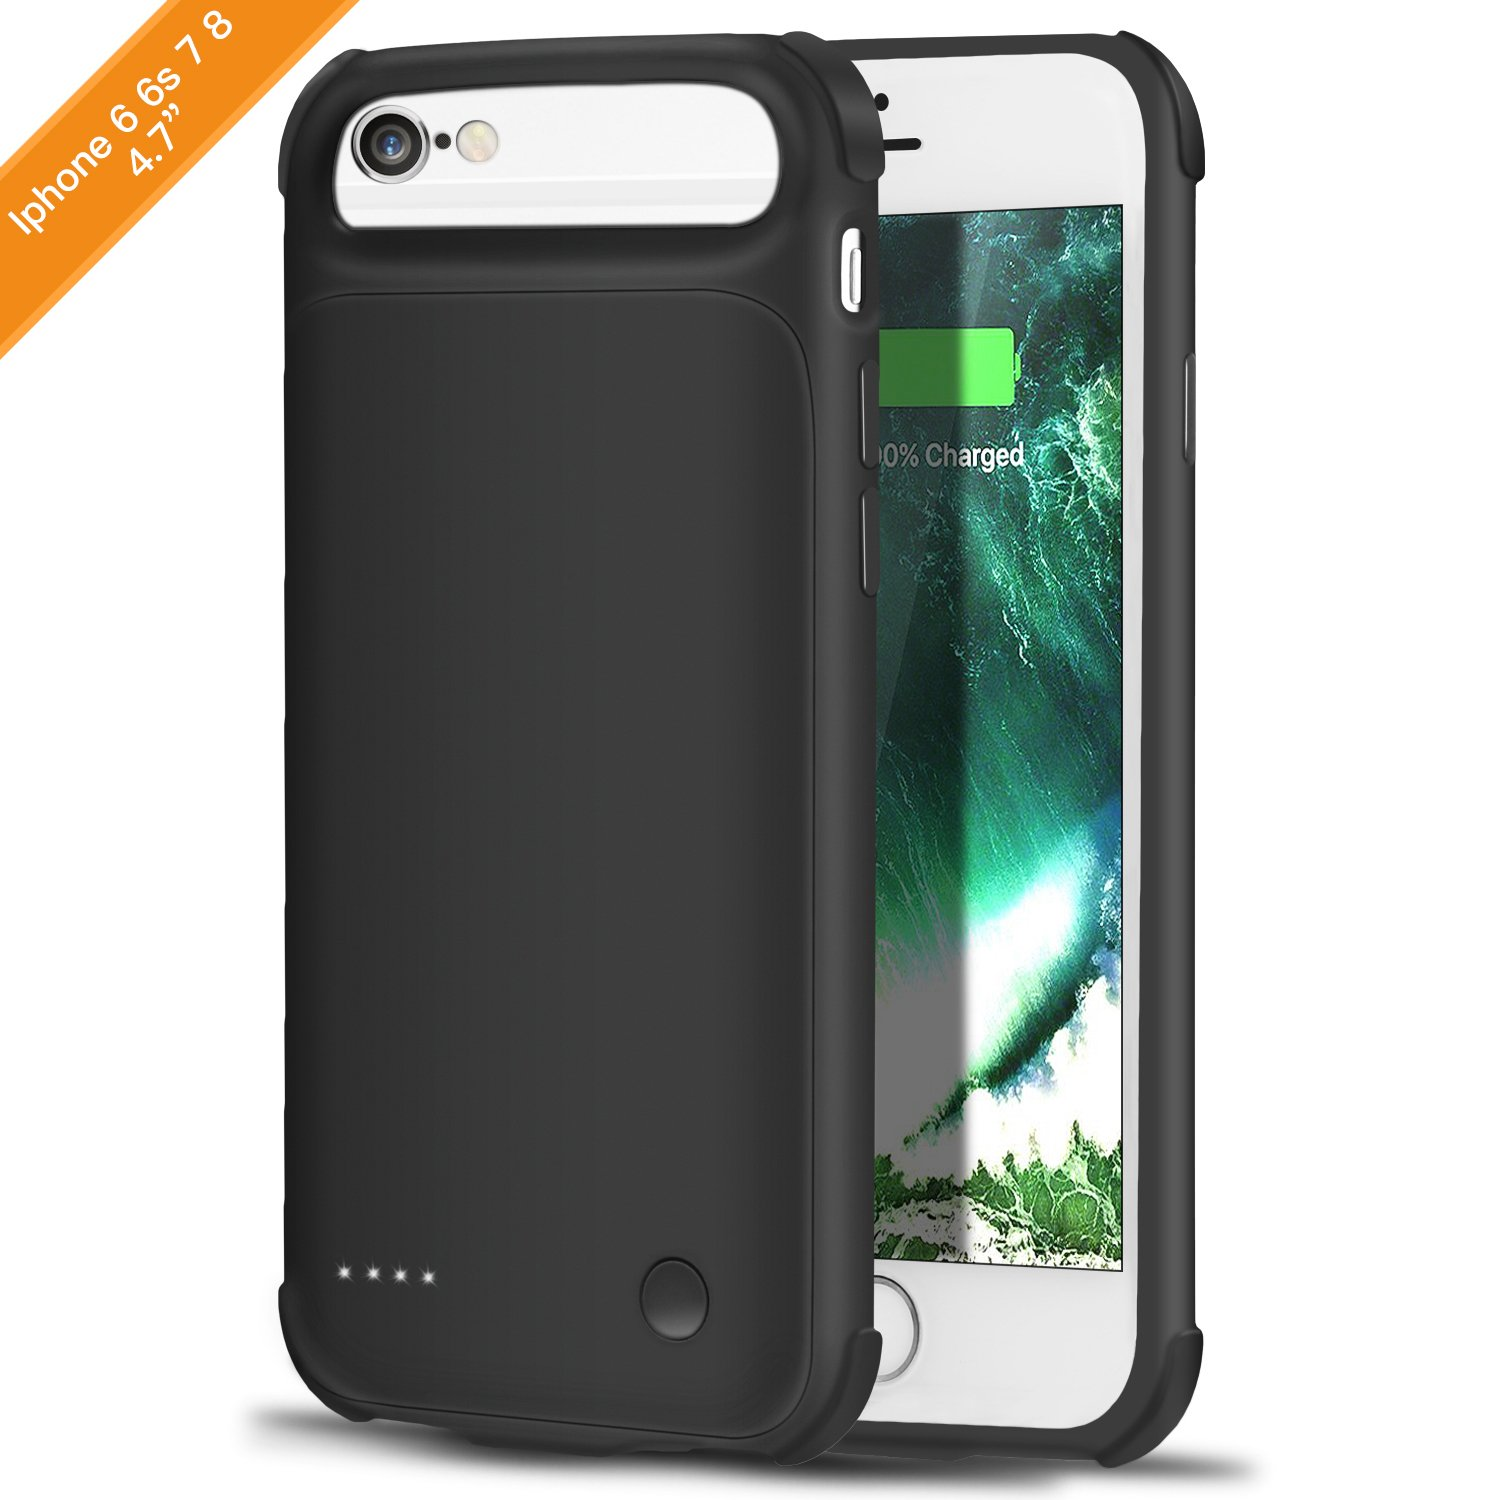 FHLP iPhone 6 6S 7 8 Charging Case Battery Case [2800mAh],Rechargeable External Battery Portable Extended Power Charger Protective for iPhone 6/6S/7/8 (4.7 Inch)-Black